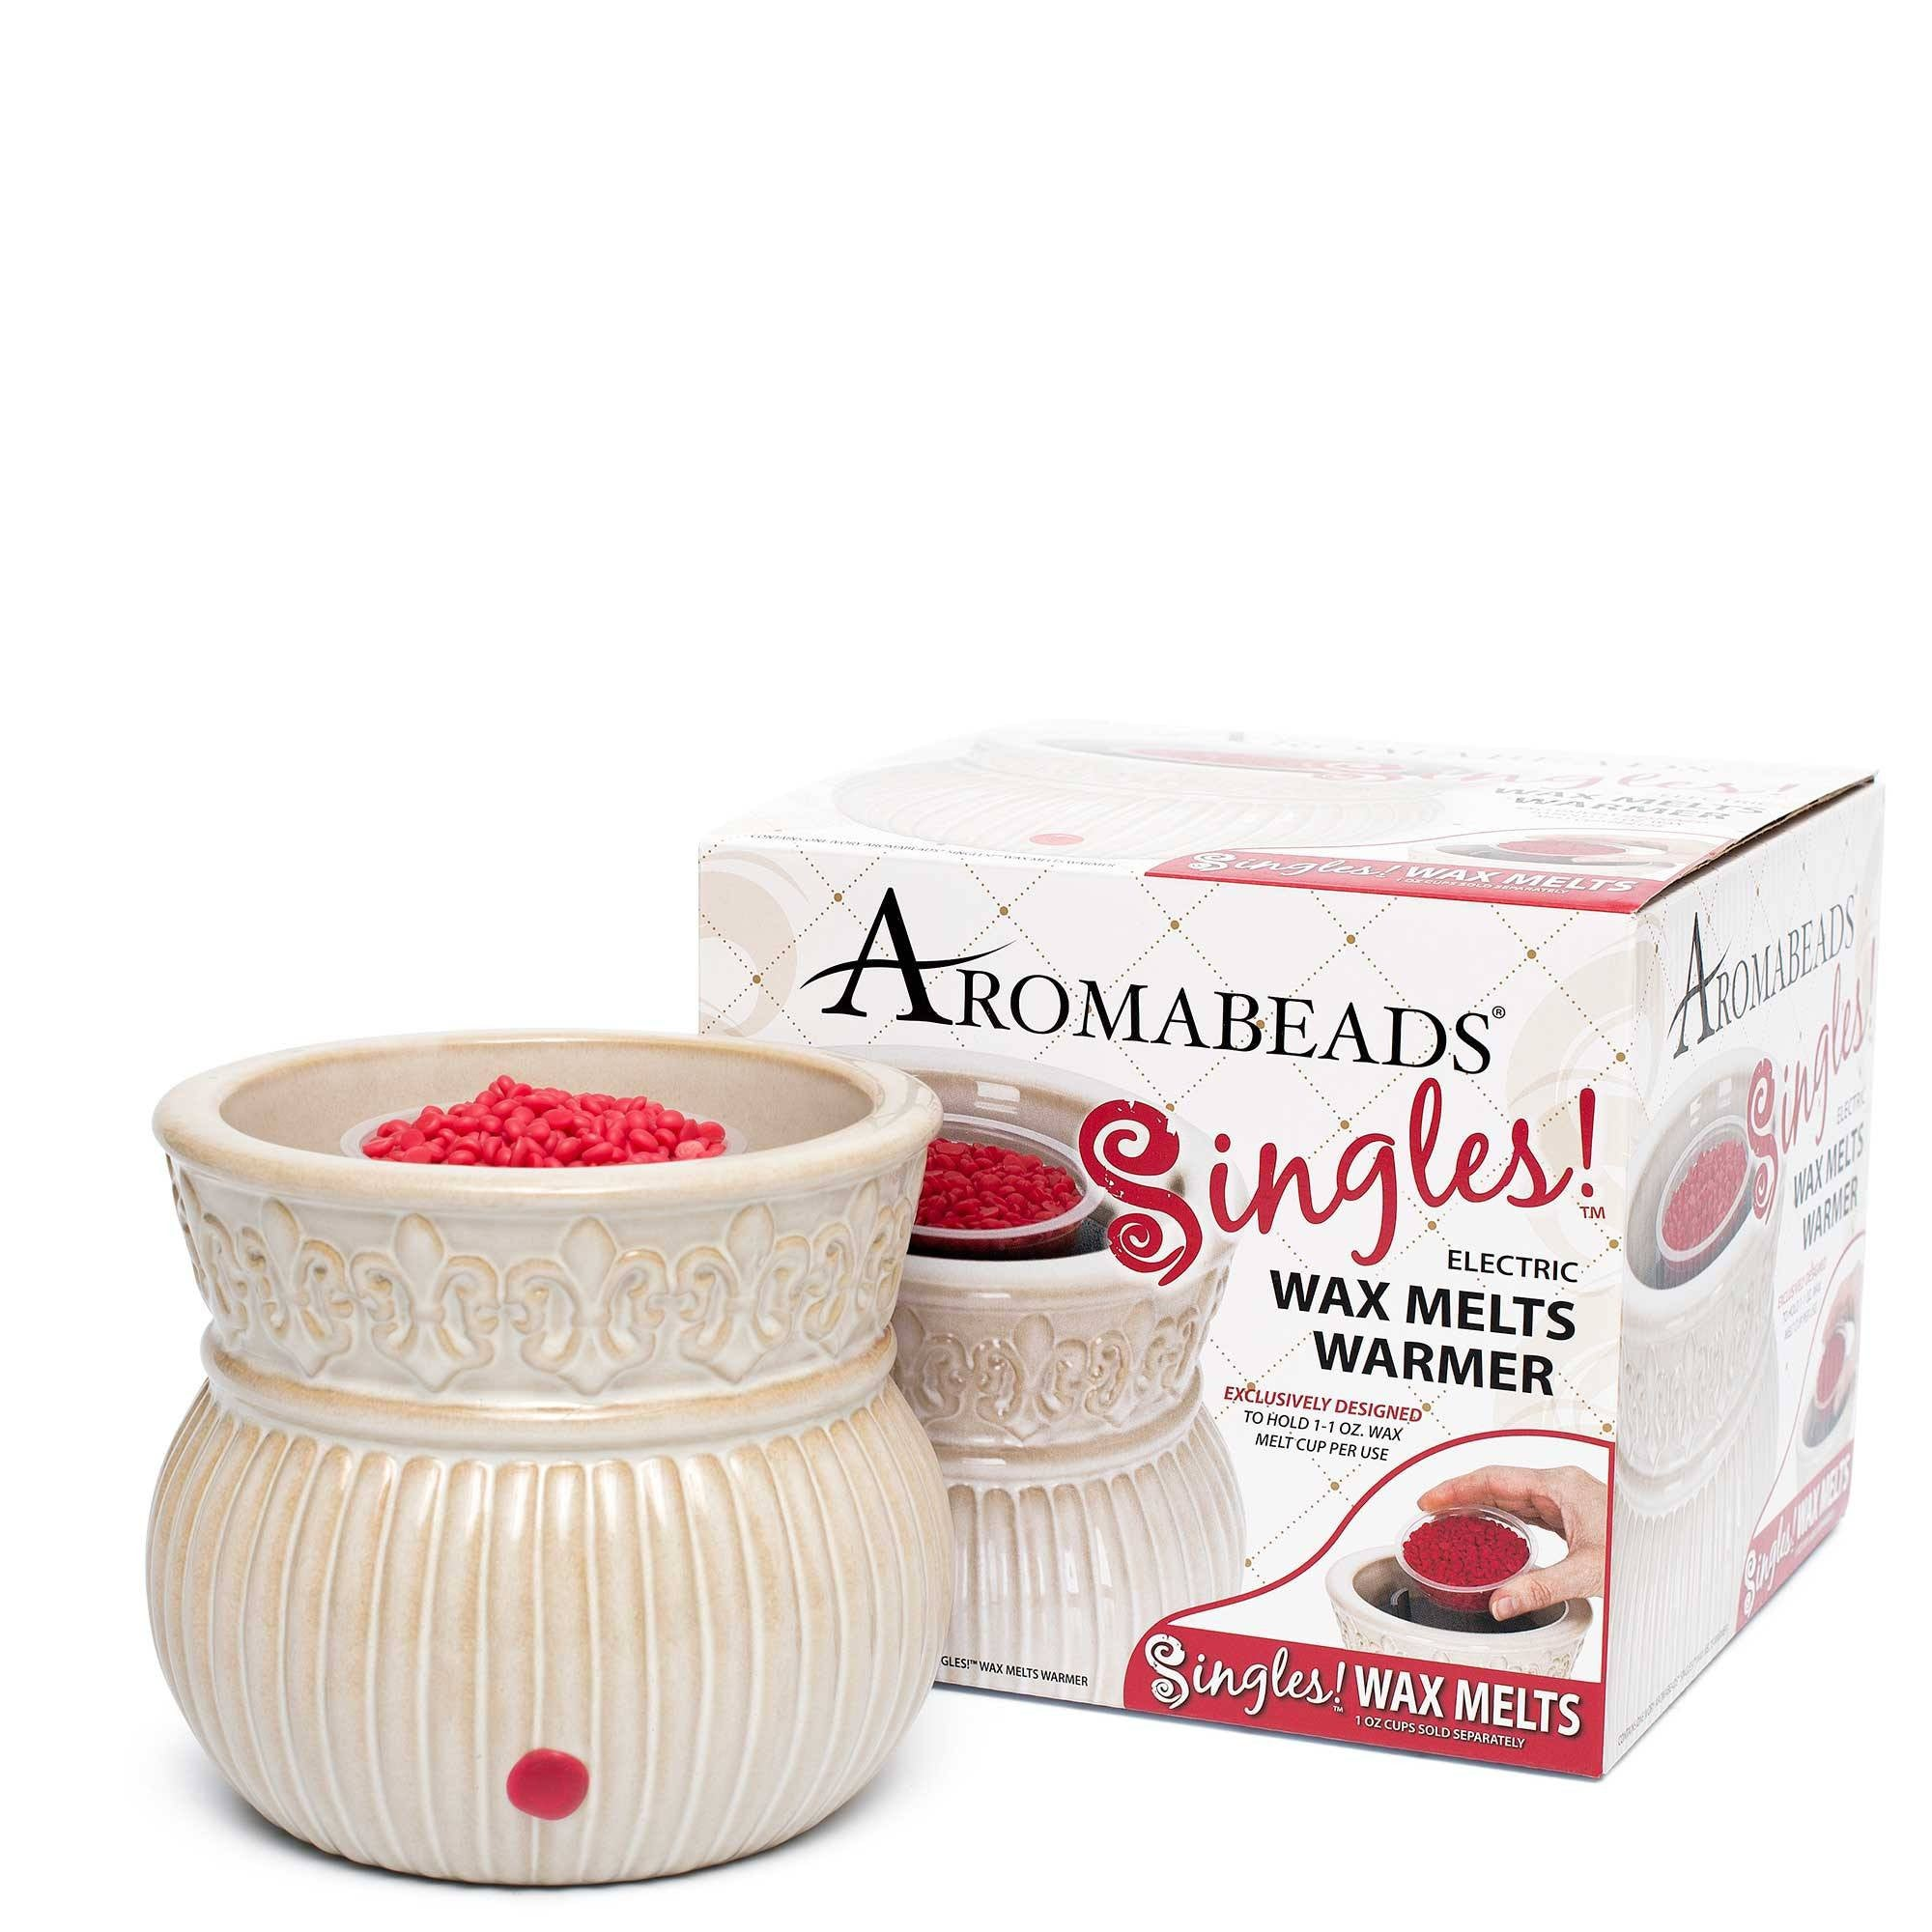 Aromabeads Singles Black Sands Scented Wax Melts - Candlemart.com - 3